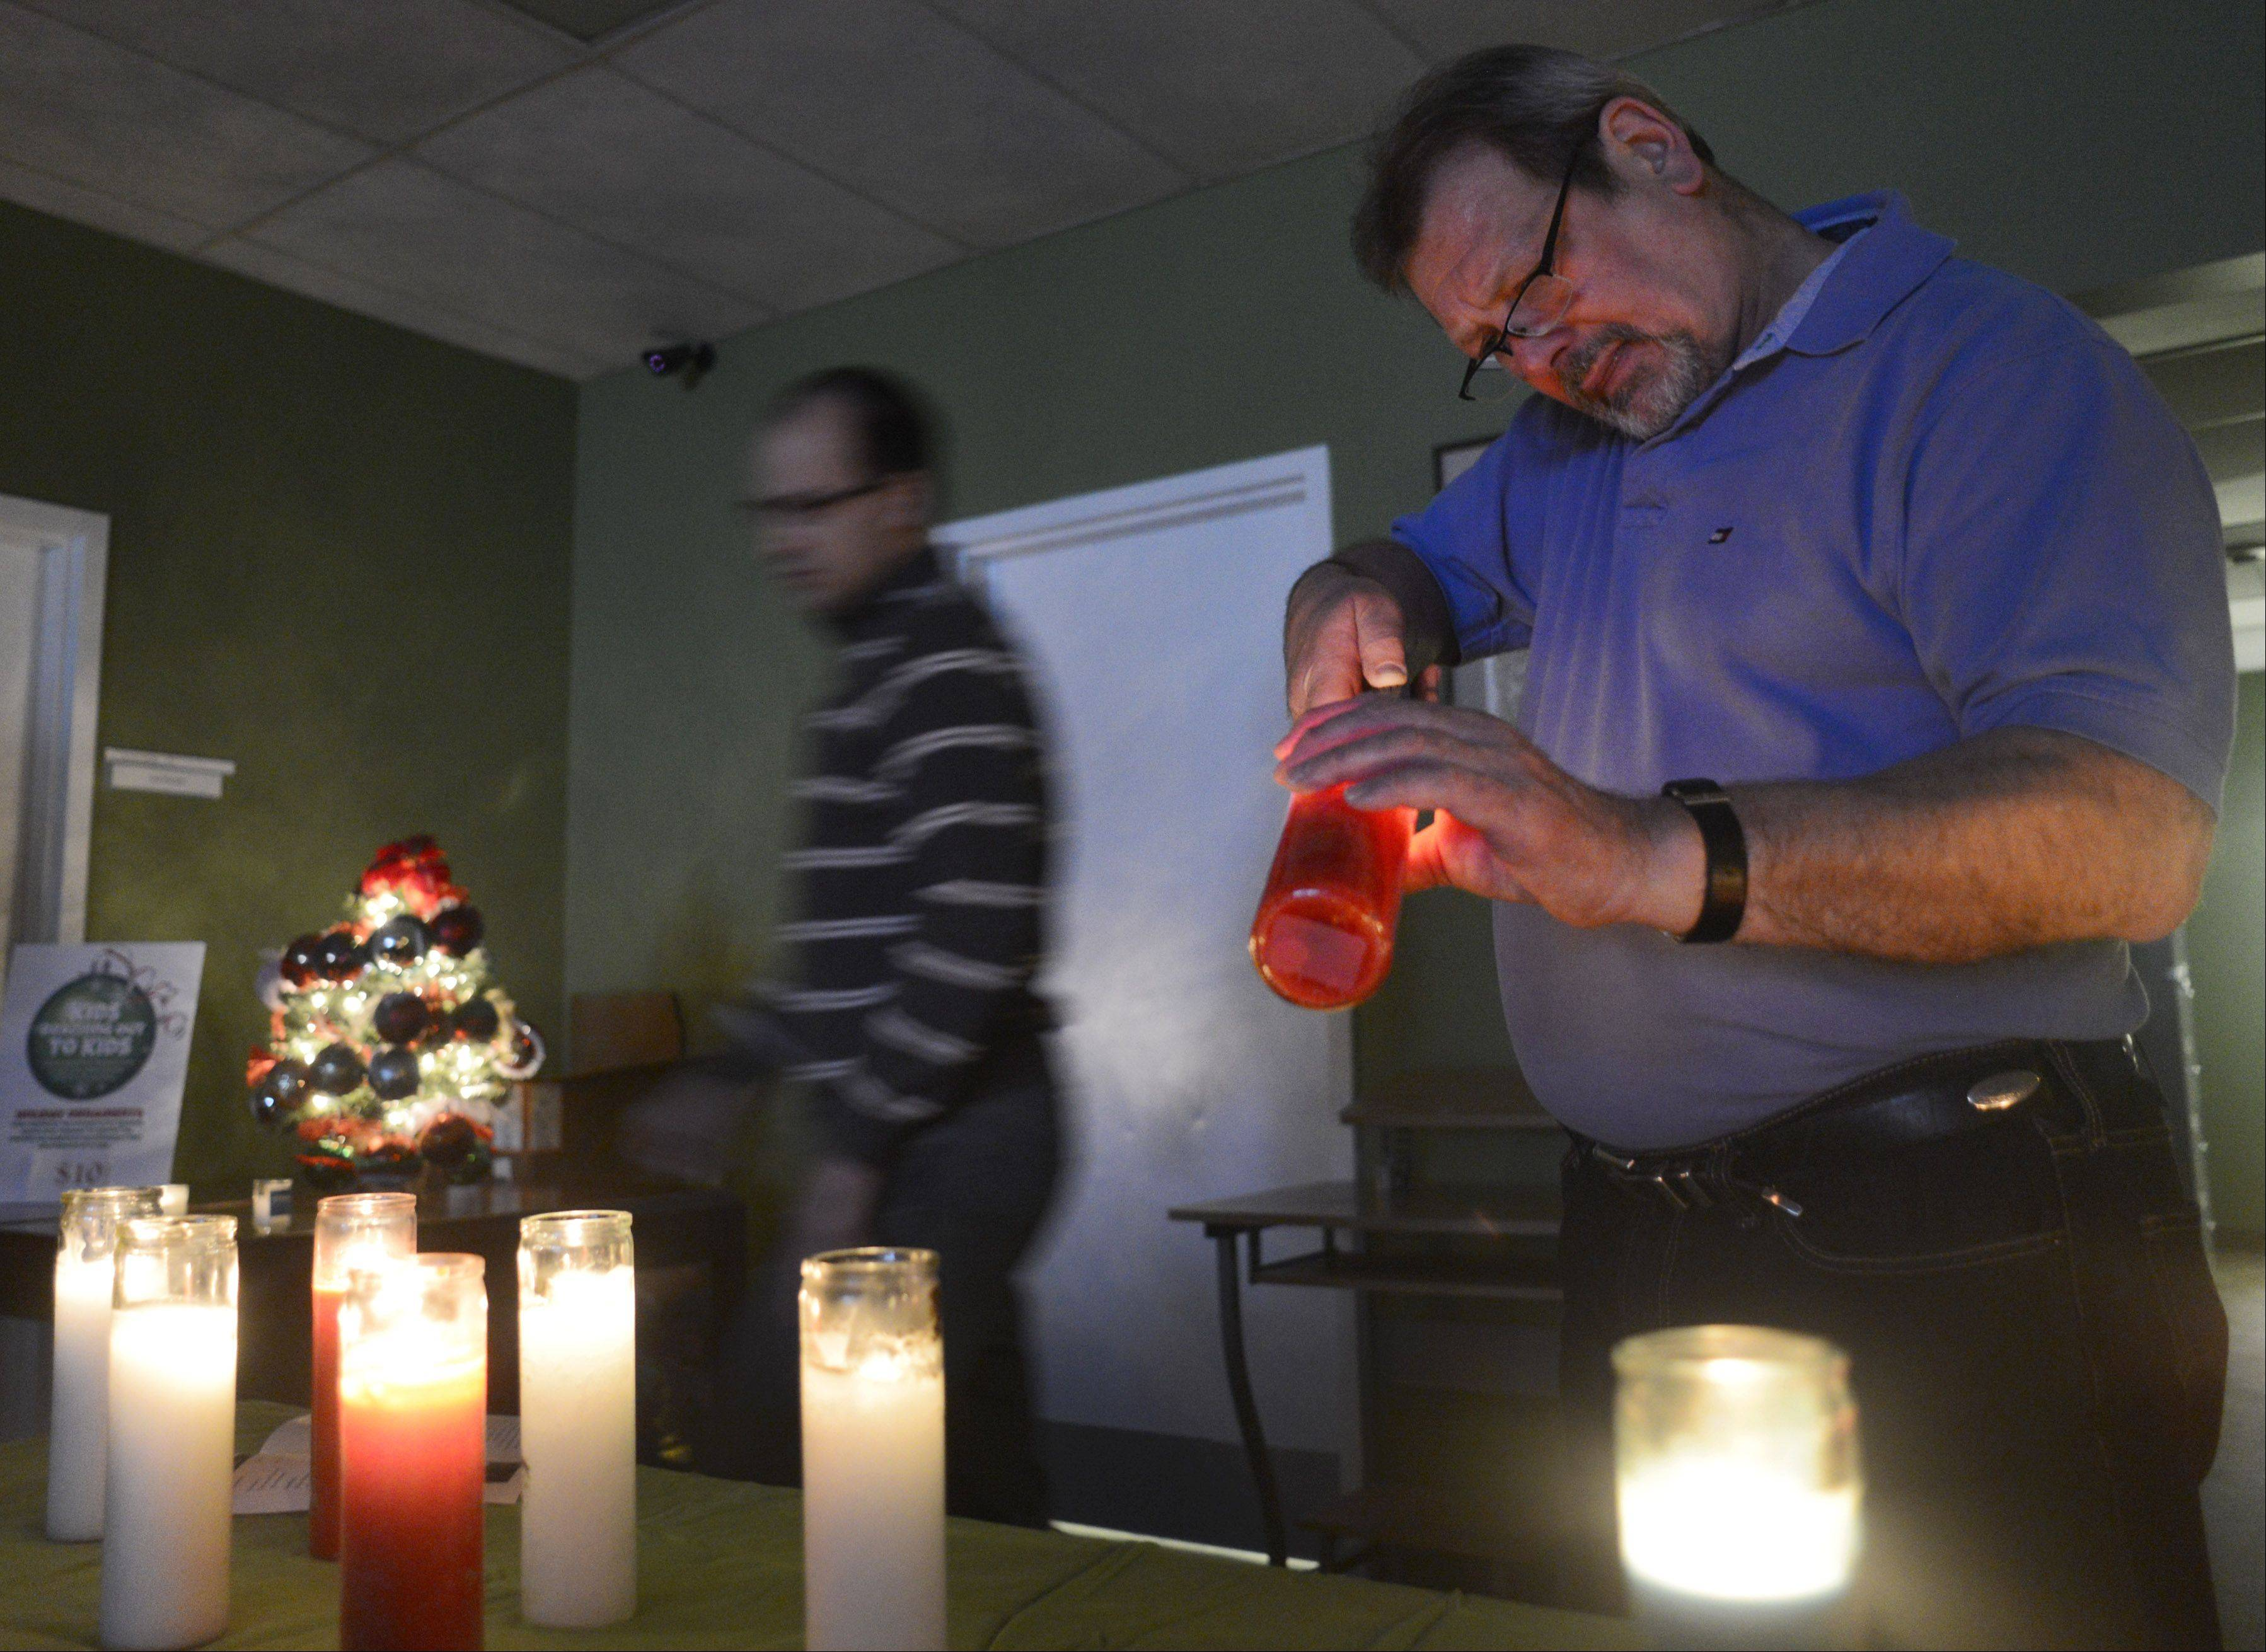 Case manager John Aliprandi, right, and Clinical Director Todd Stull light candles as Journeys-The Road Home in Palatine holds its annual Homeless Memorial Service to honor the area's homeless who have died during the past year.